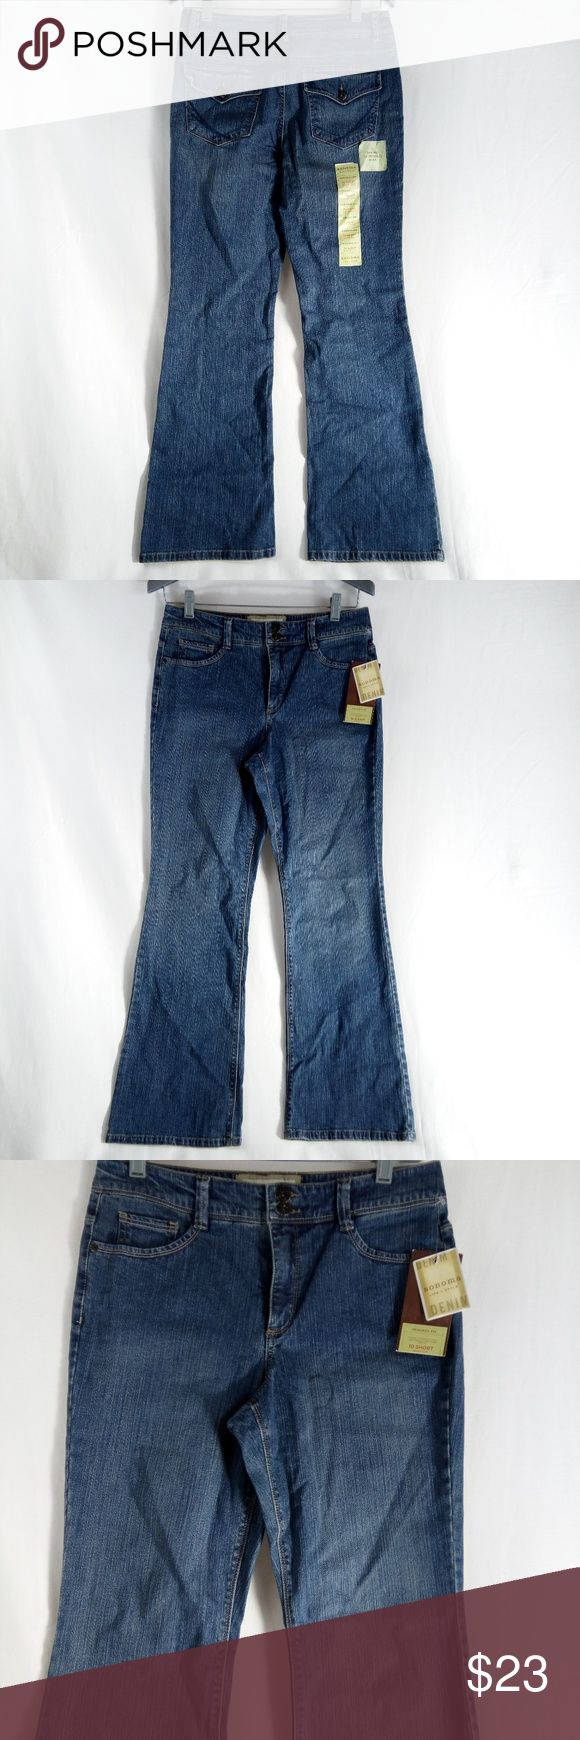 """Sonoma Original Fit Bootcut Slimming Panel 10S Clean good condition.  MEASURMENTS::  WAIST: 34""""  HIPS: 19""""  INSEAM: 28""""  Hi! Thank you for shopping with us at Shebrew Trading Store on Poshmark. Please review photos above and measurement details which will answer many of your sizing questions. If you still have a question, please contact us and we will be very happy to assist you further.   We ship same day or next business day, so you receive your purchase as quickly as possible. We hope to…"""